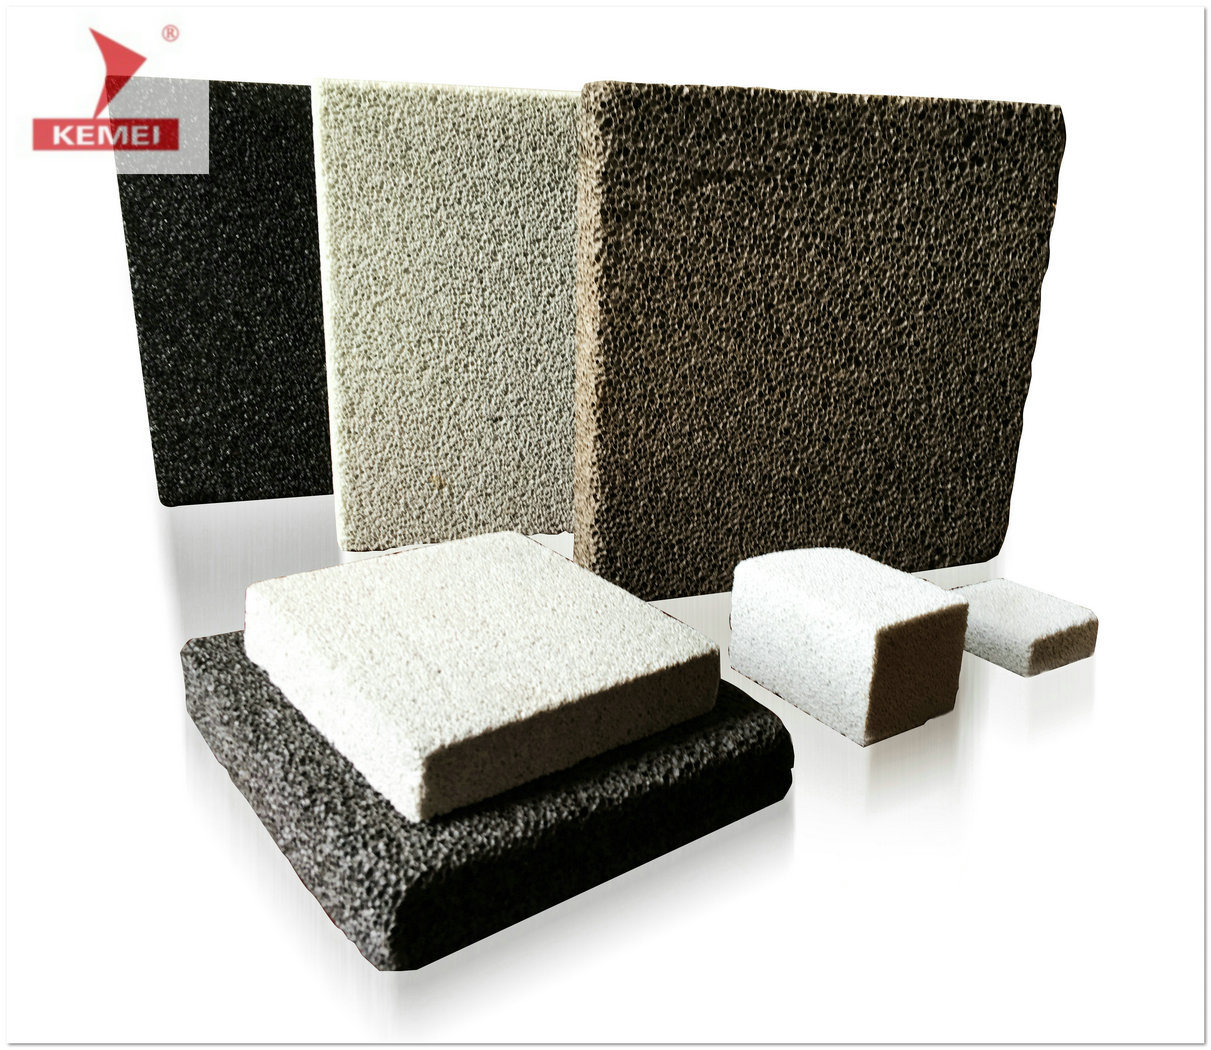 New Wall Insulation Material - A1 Fireproof Foam Ceramic Board